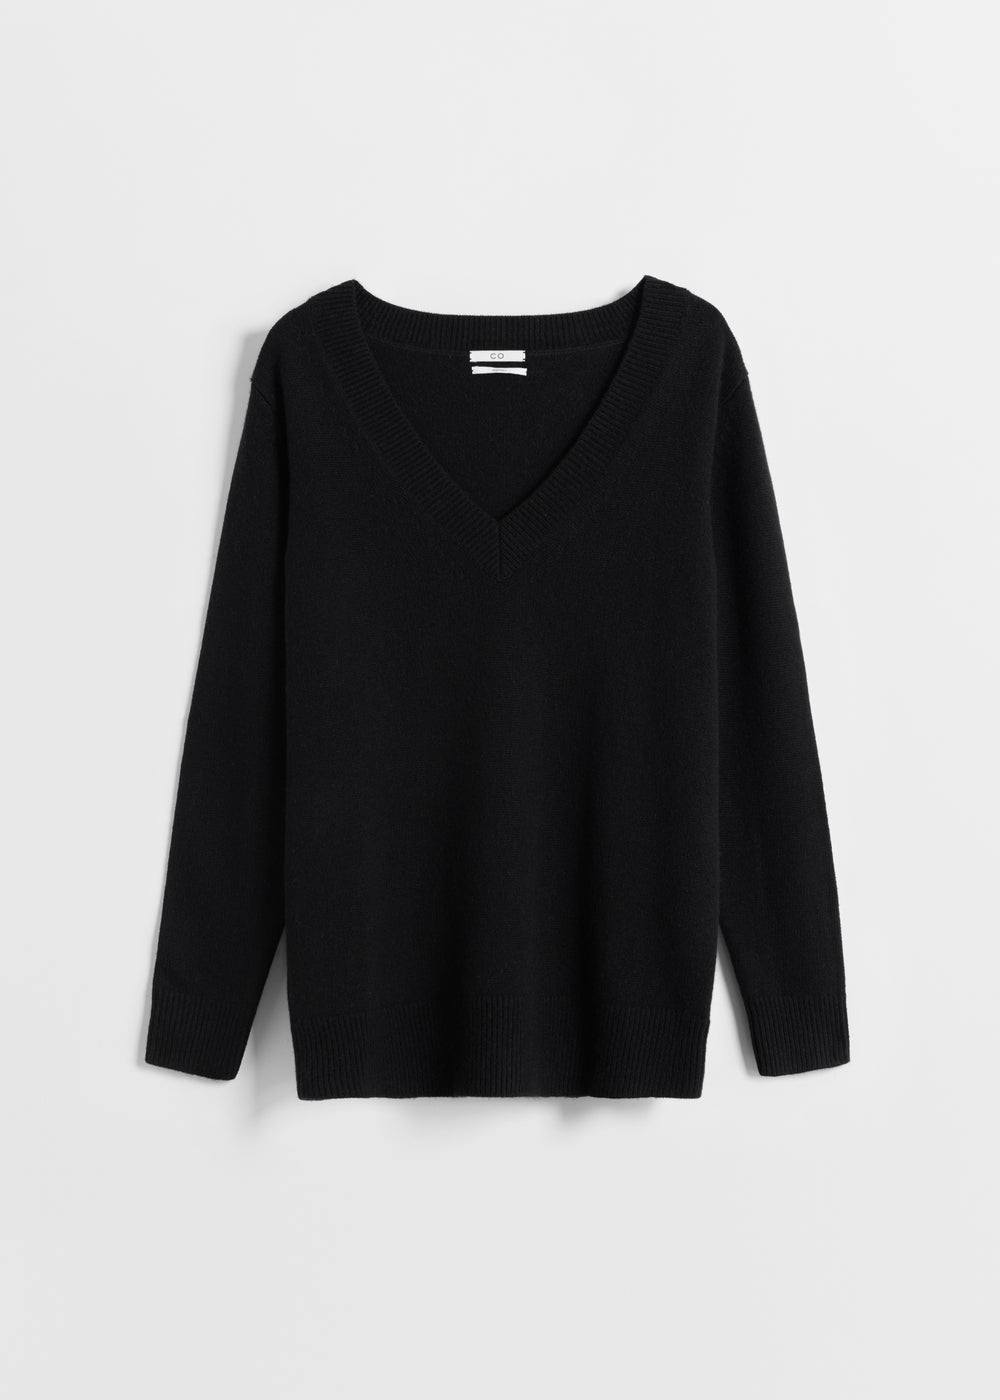 V-Neck Boyfriend Sweater - Grey in Black by Co Collections